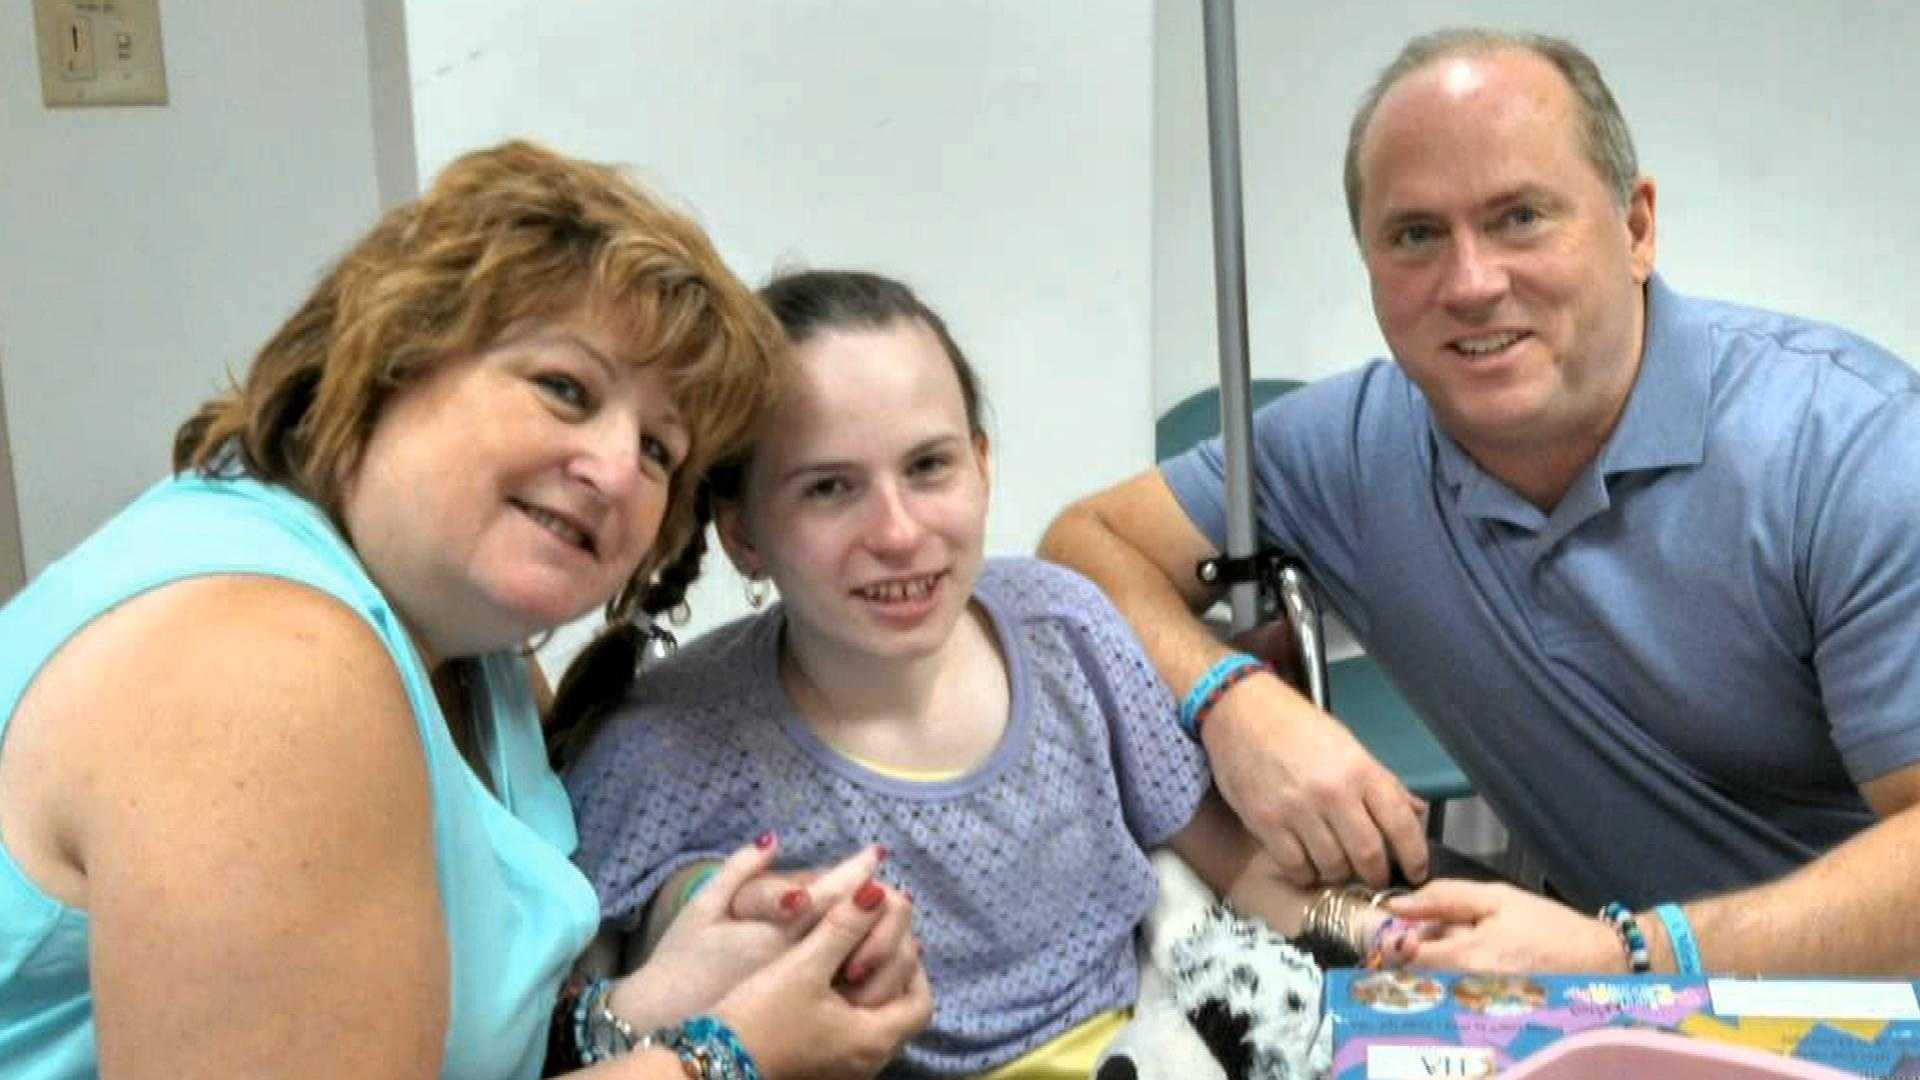 Tuesday, June 17: Justina's Story